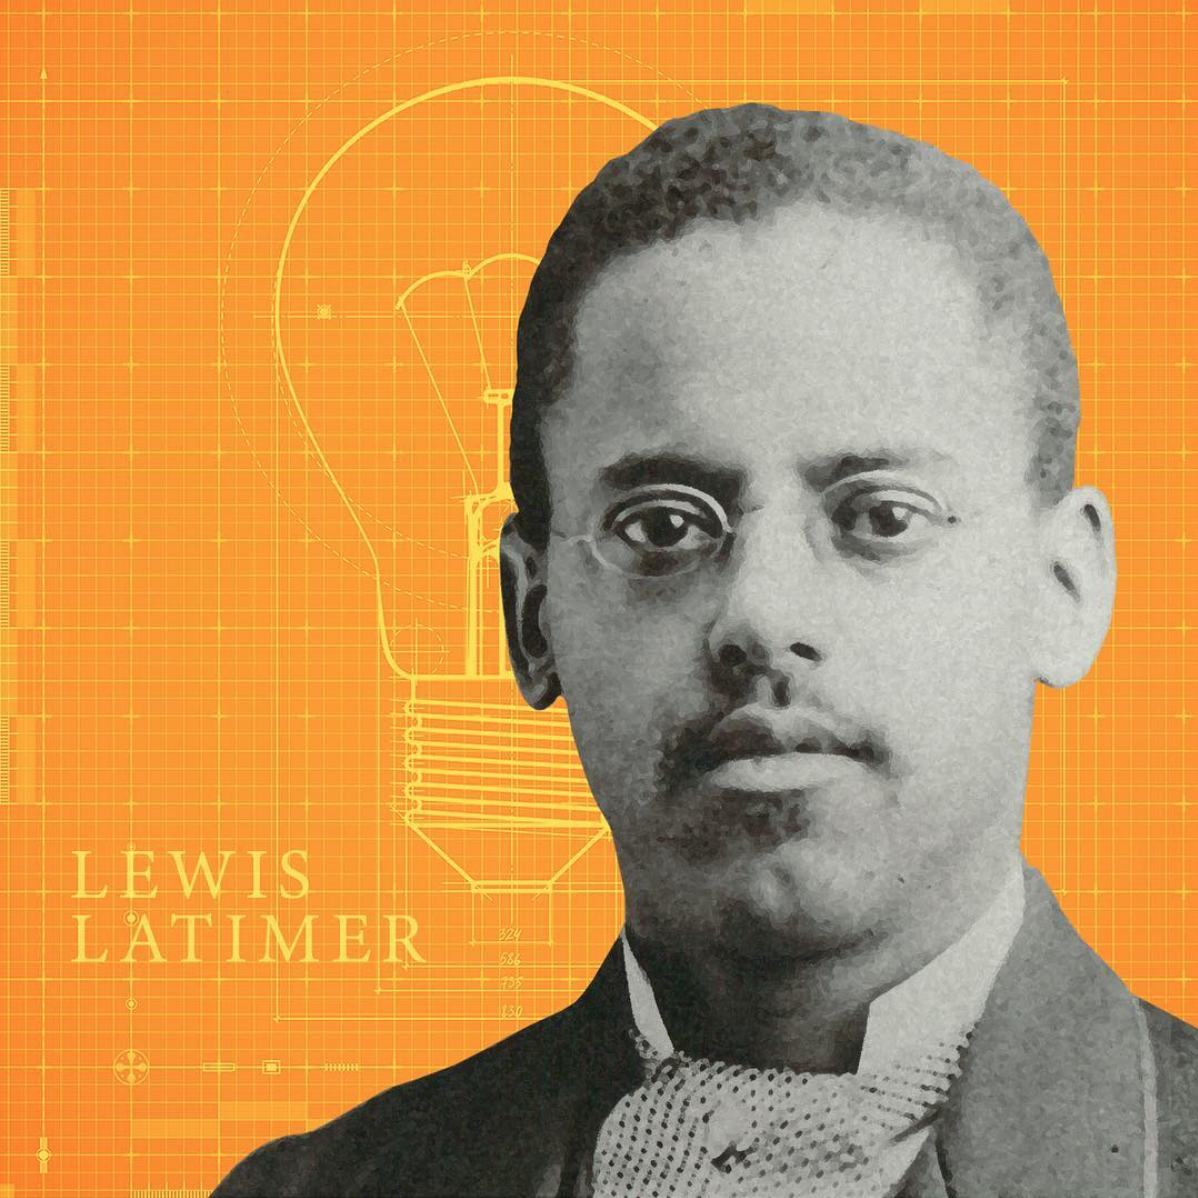 Meet Lewis Latimer, an African-American inventor who was inducted in the National Inventors Hall of Fame for his work on electric filament manufacturing techniques. Check out our FB or Twitter to learn more!  #BlackHistoryMonth